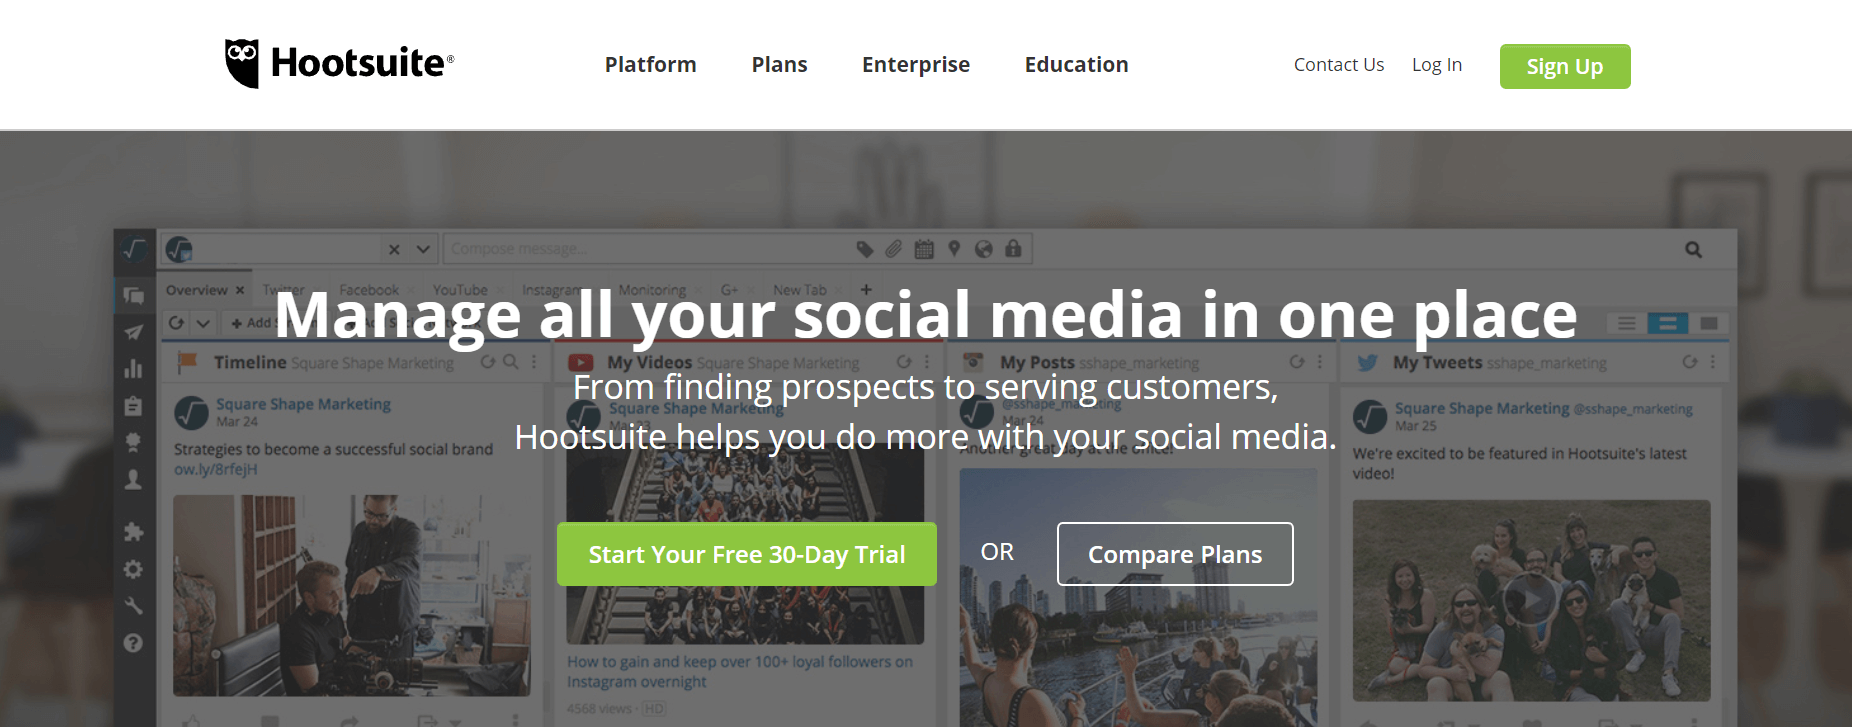 The Hootsuite website.